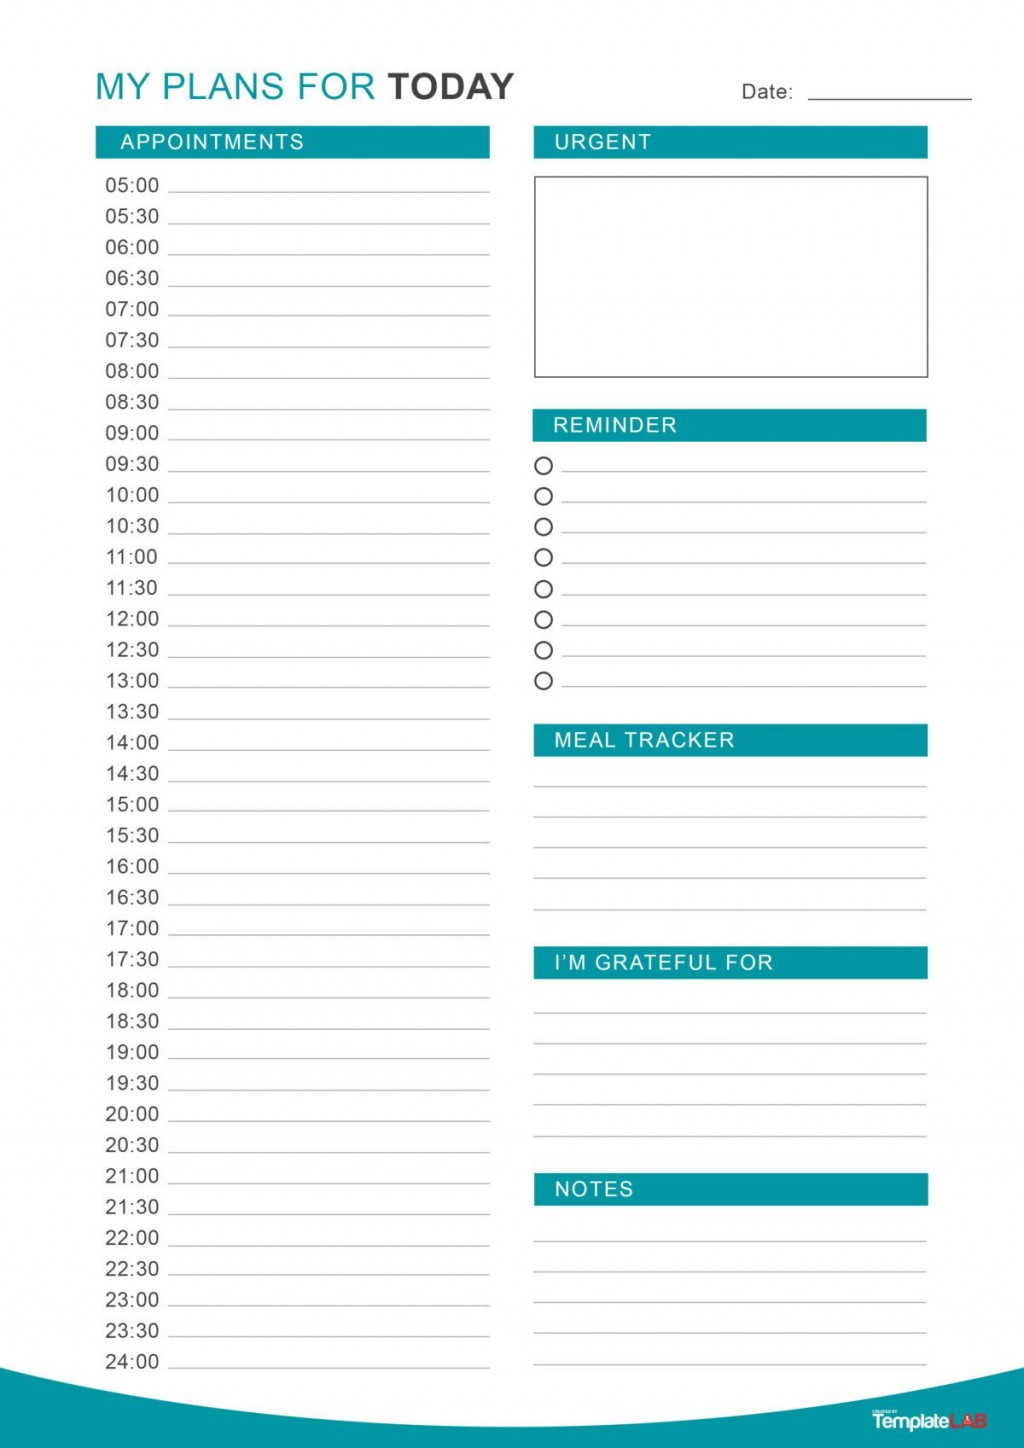 005 Surprising Printable Daily Schedule Template Inspiration Large